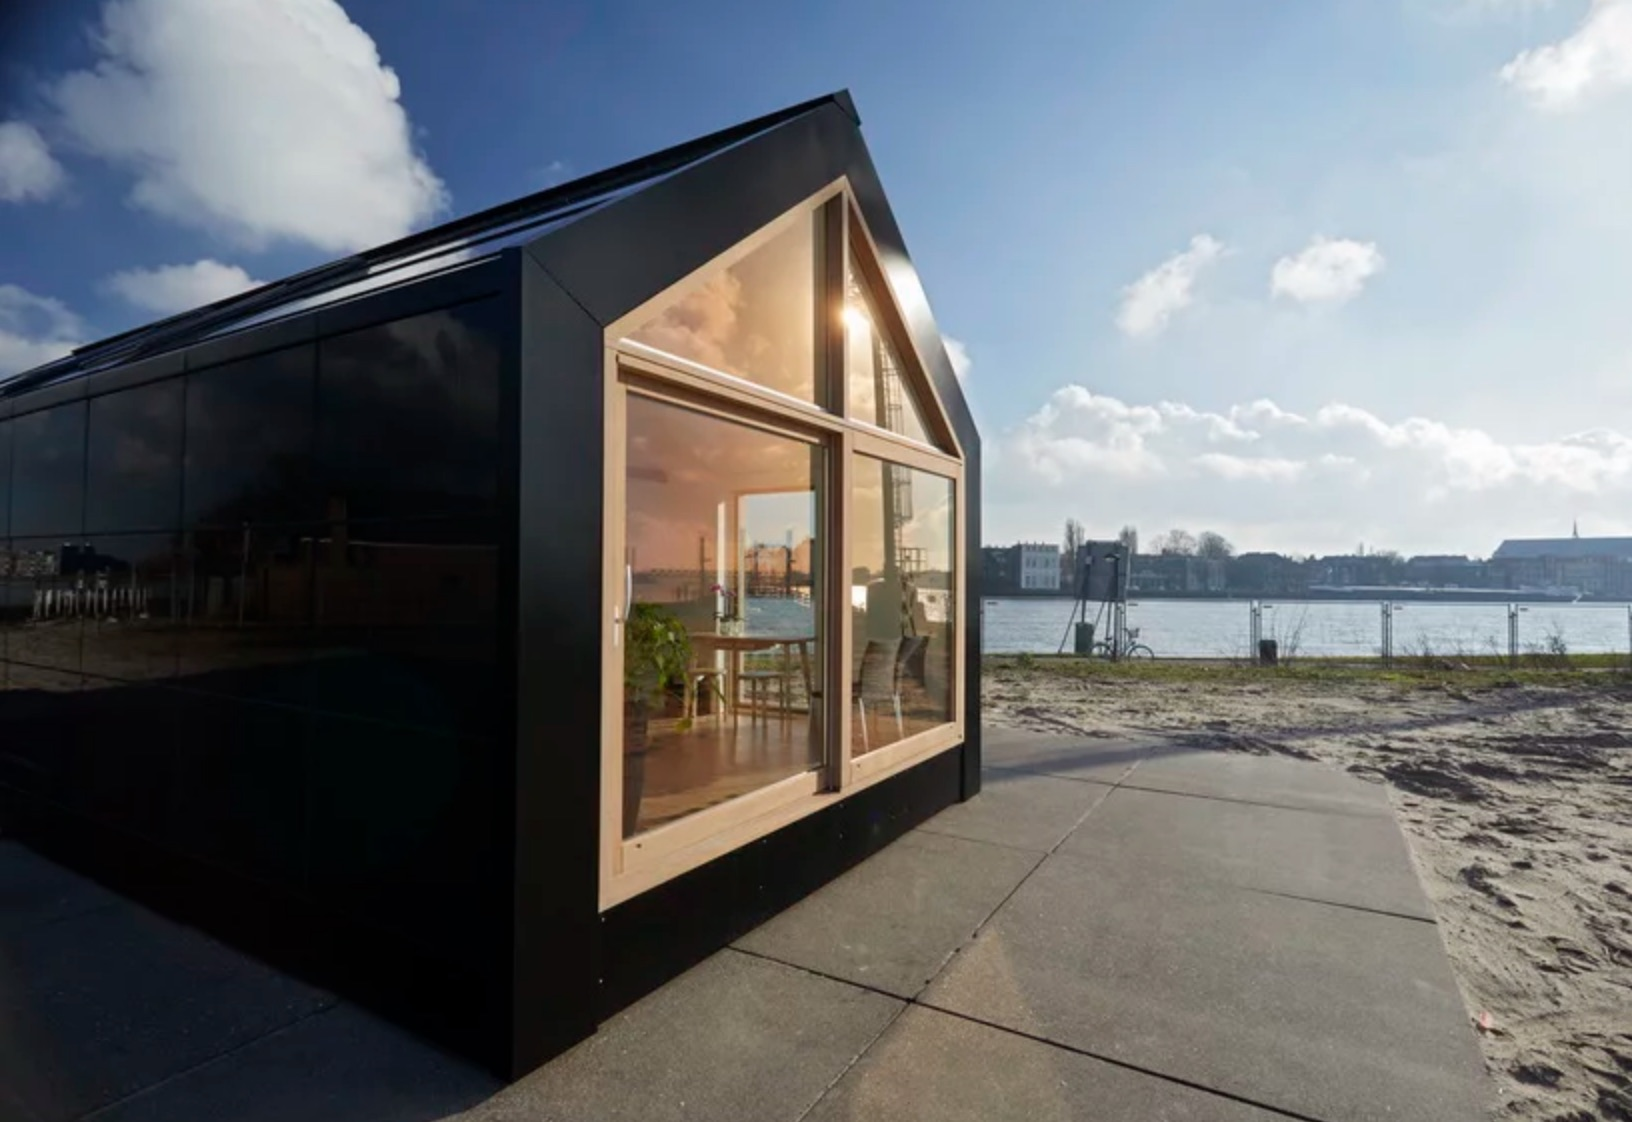 This modular prefab home is powered by the sun